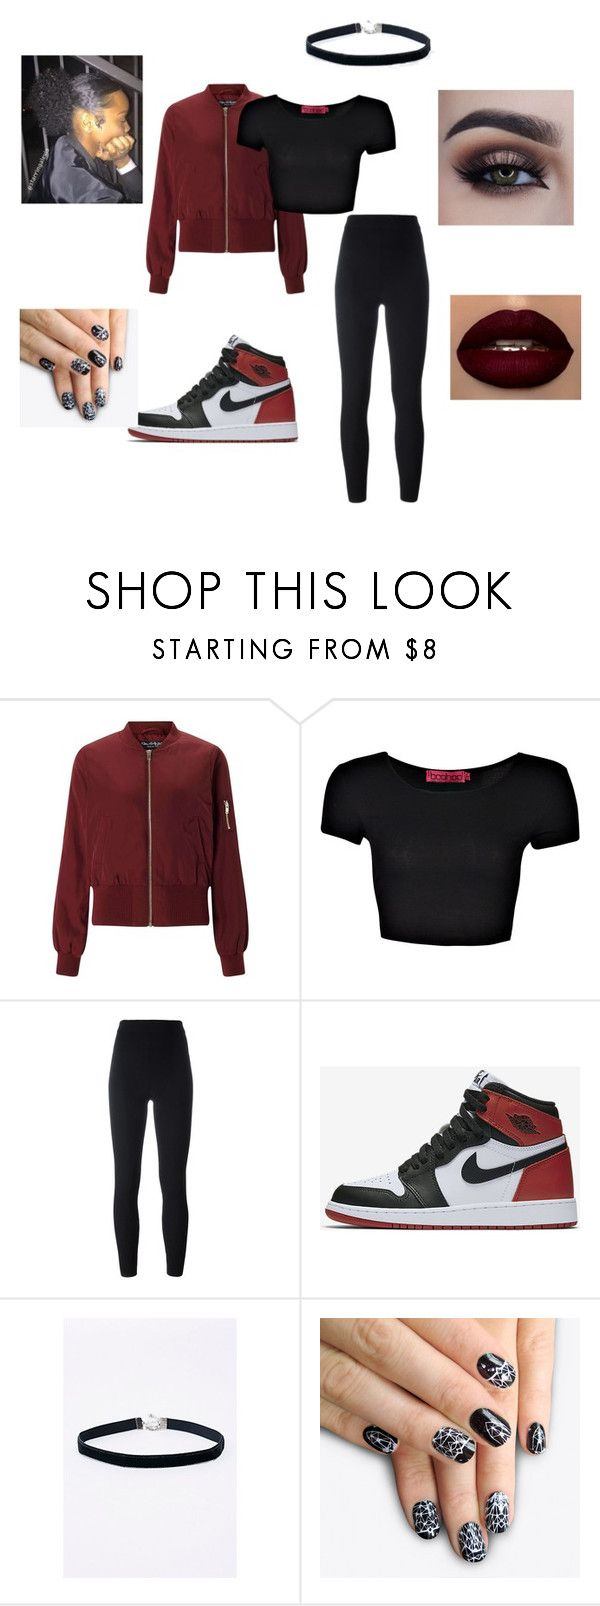 """College party tings"" by untoldseecrets ❤ liked on Polyvore featuring Miss Selfridge, Boohoo, adidas Originals, NIKE and alfa.K"